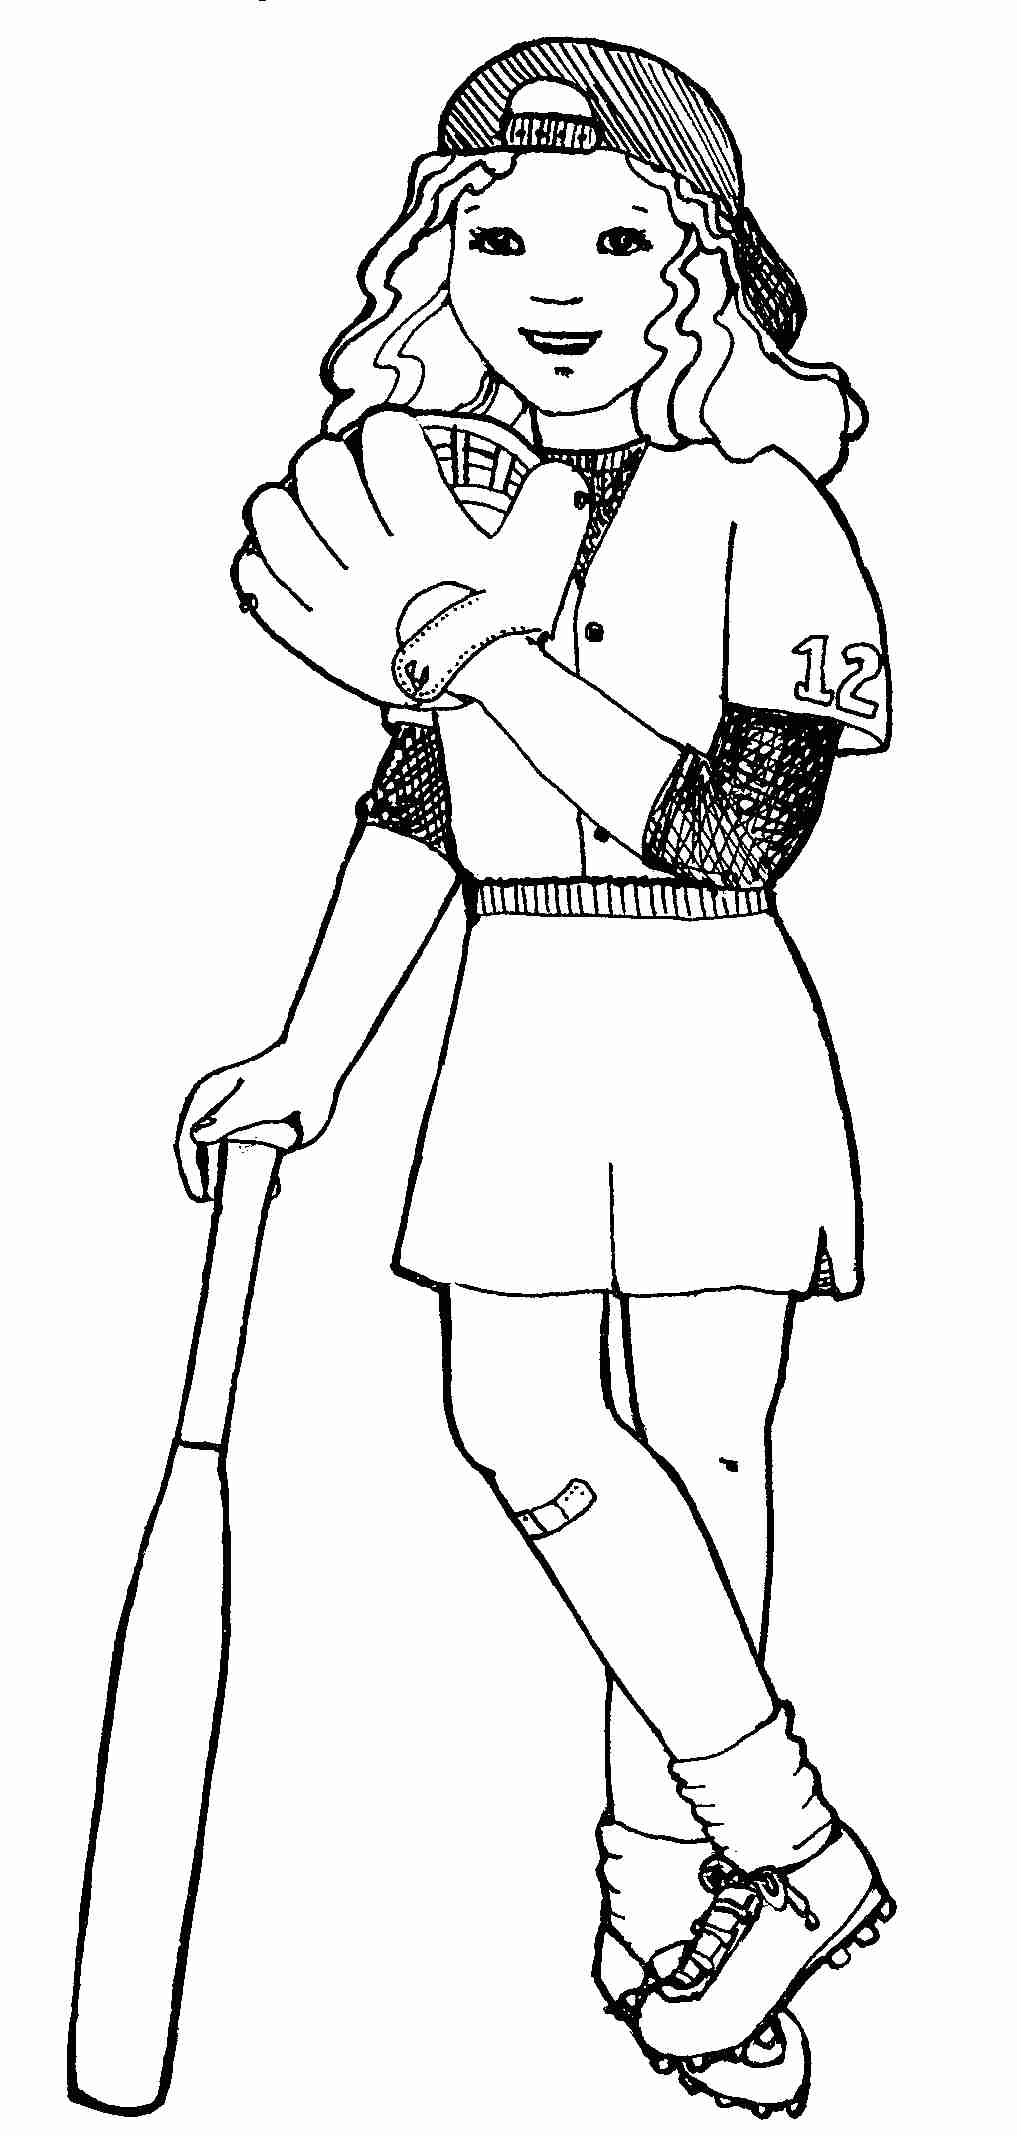 1017x2136 Pioneering Softball Coloring Page Color Pages Brilliant Olegratiy